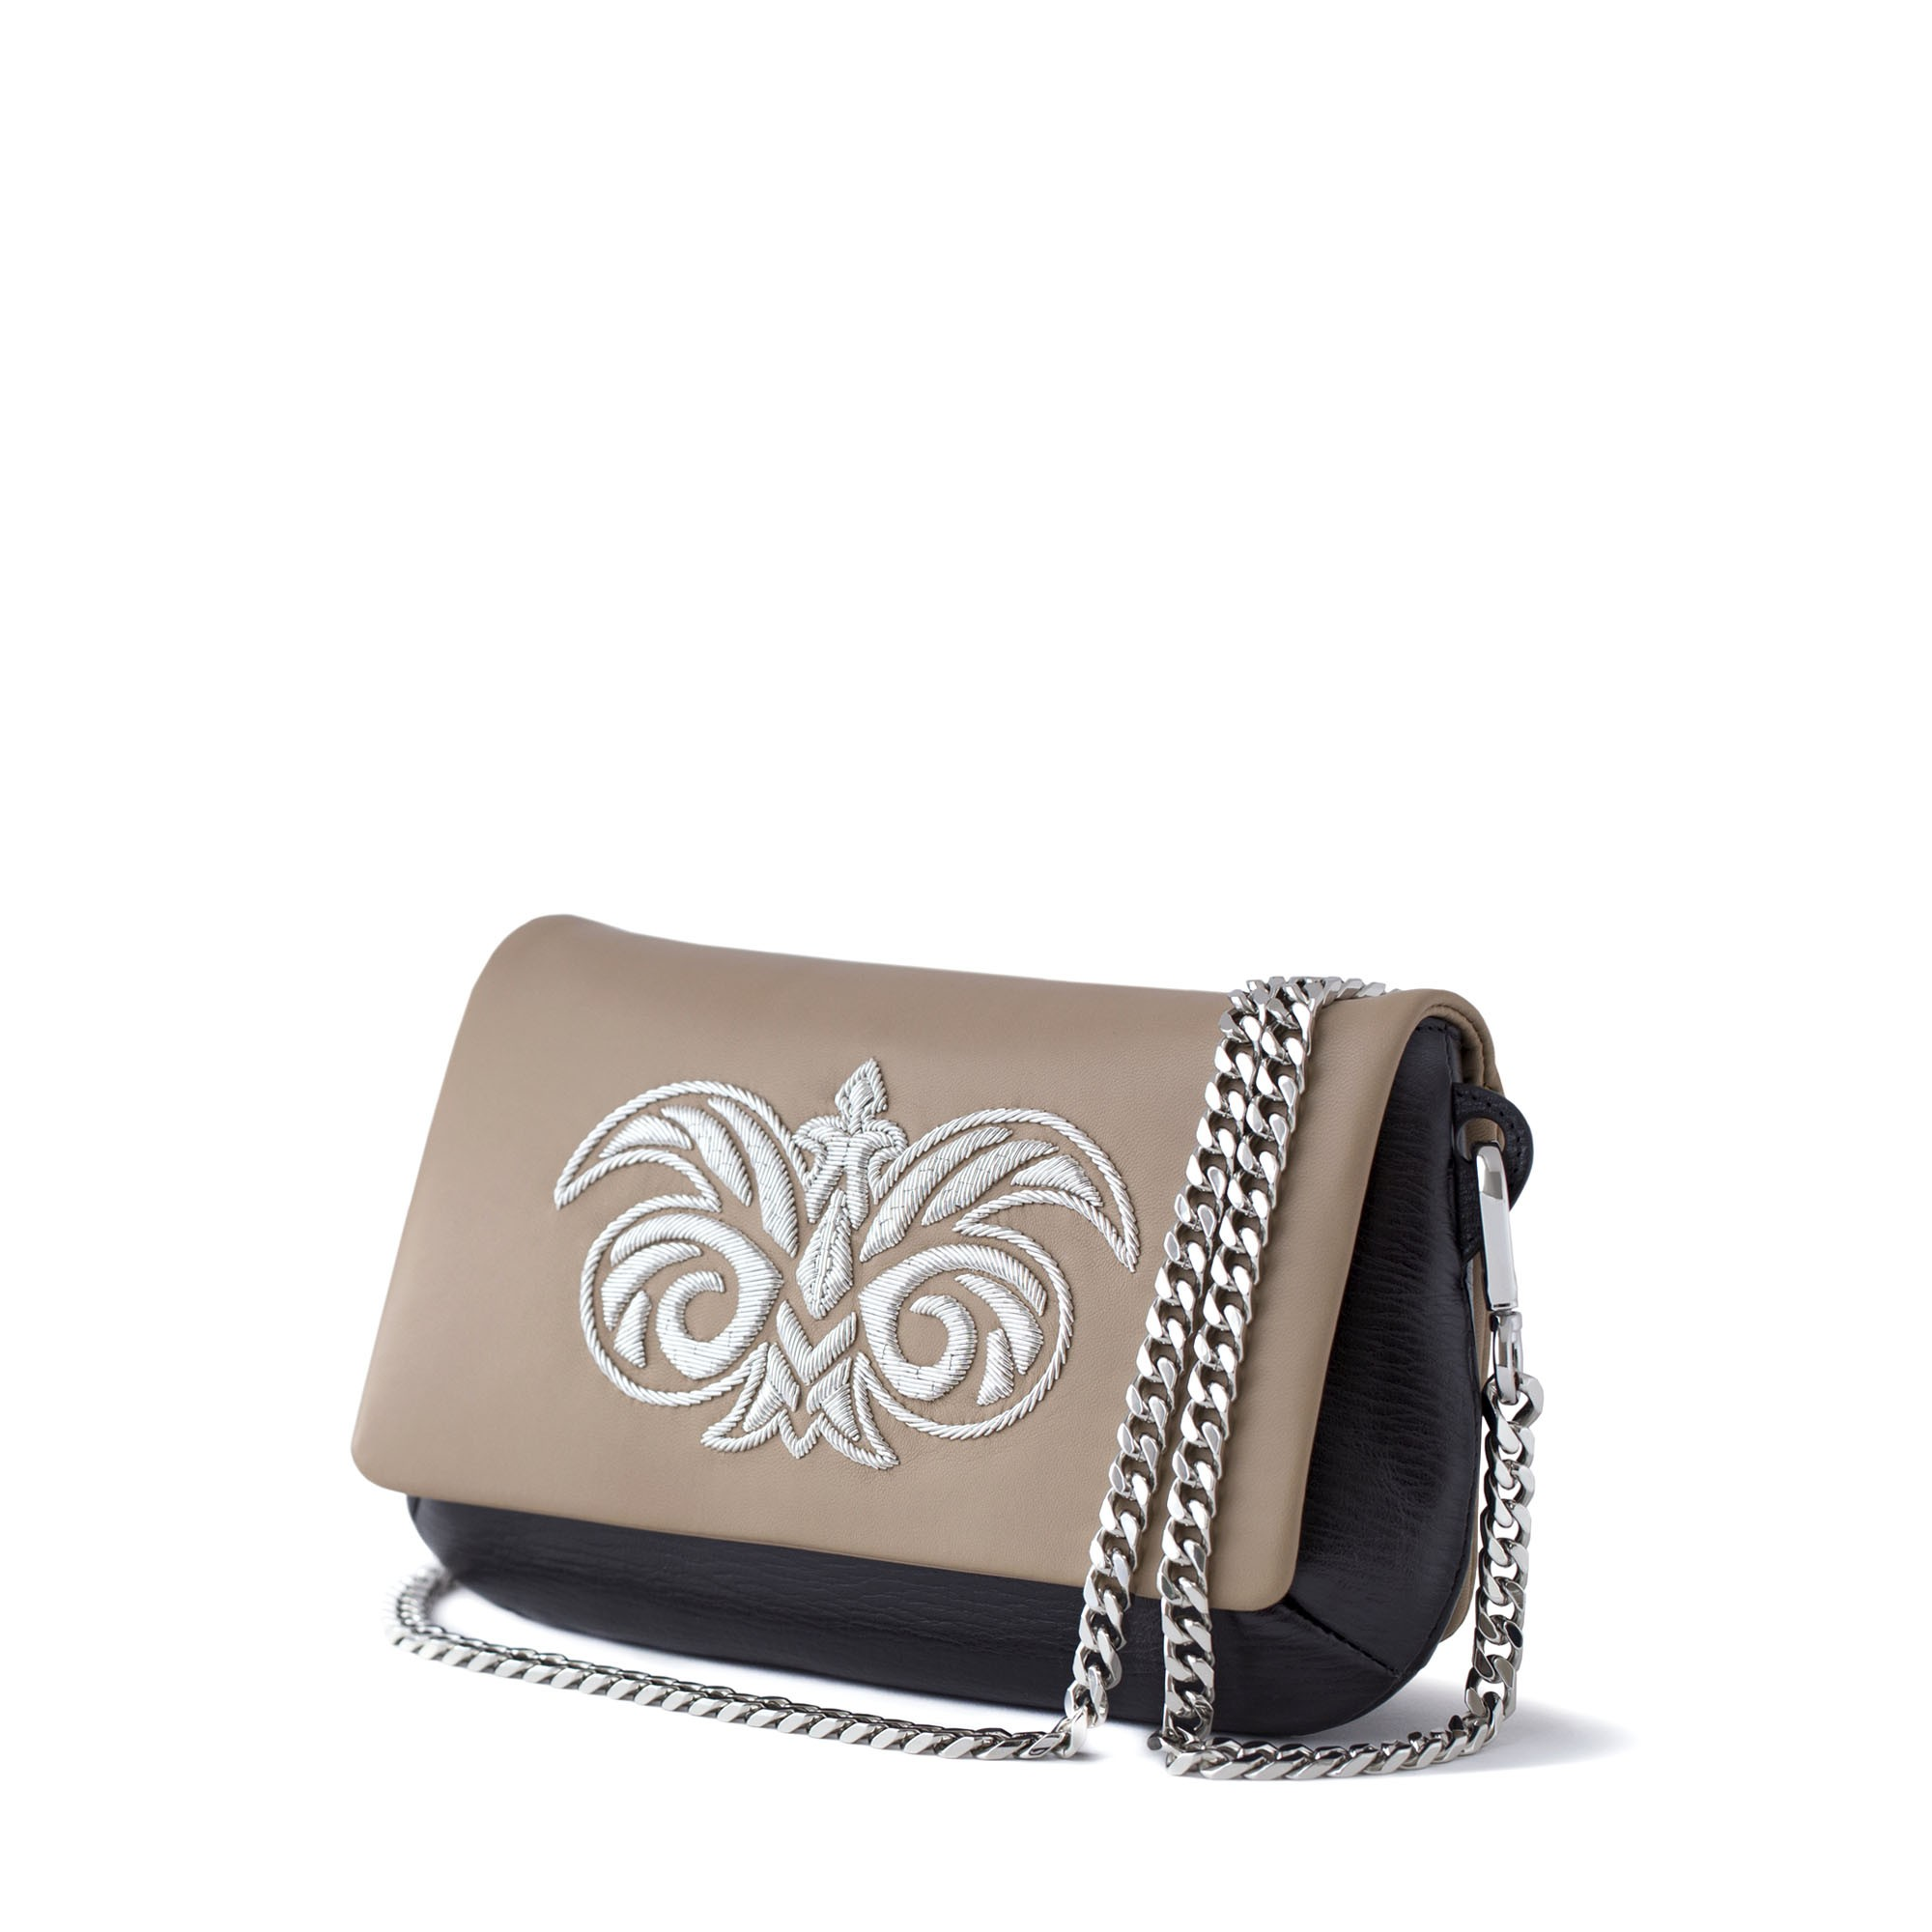 lambskin embroidered clutch